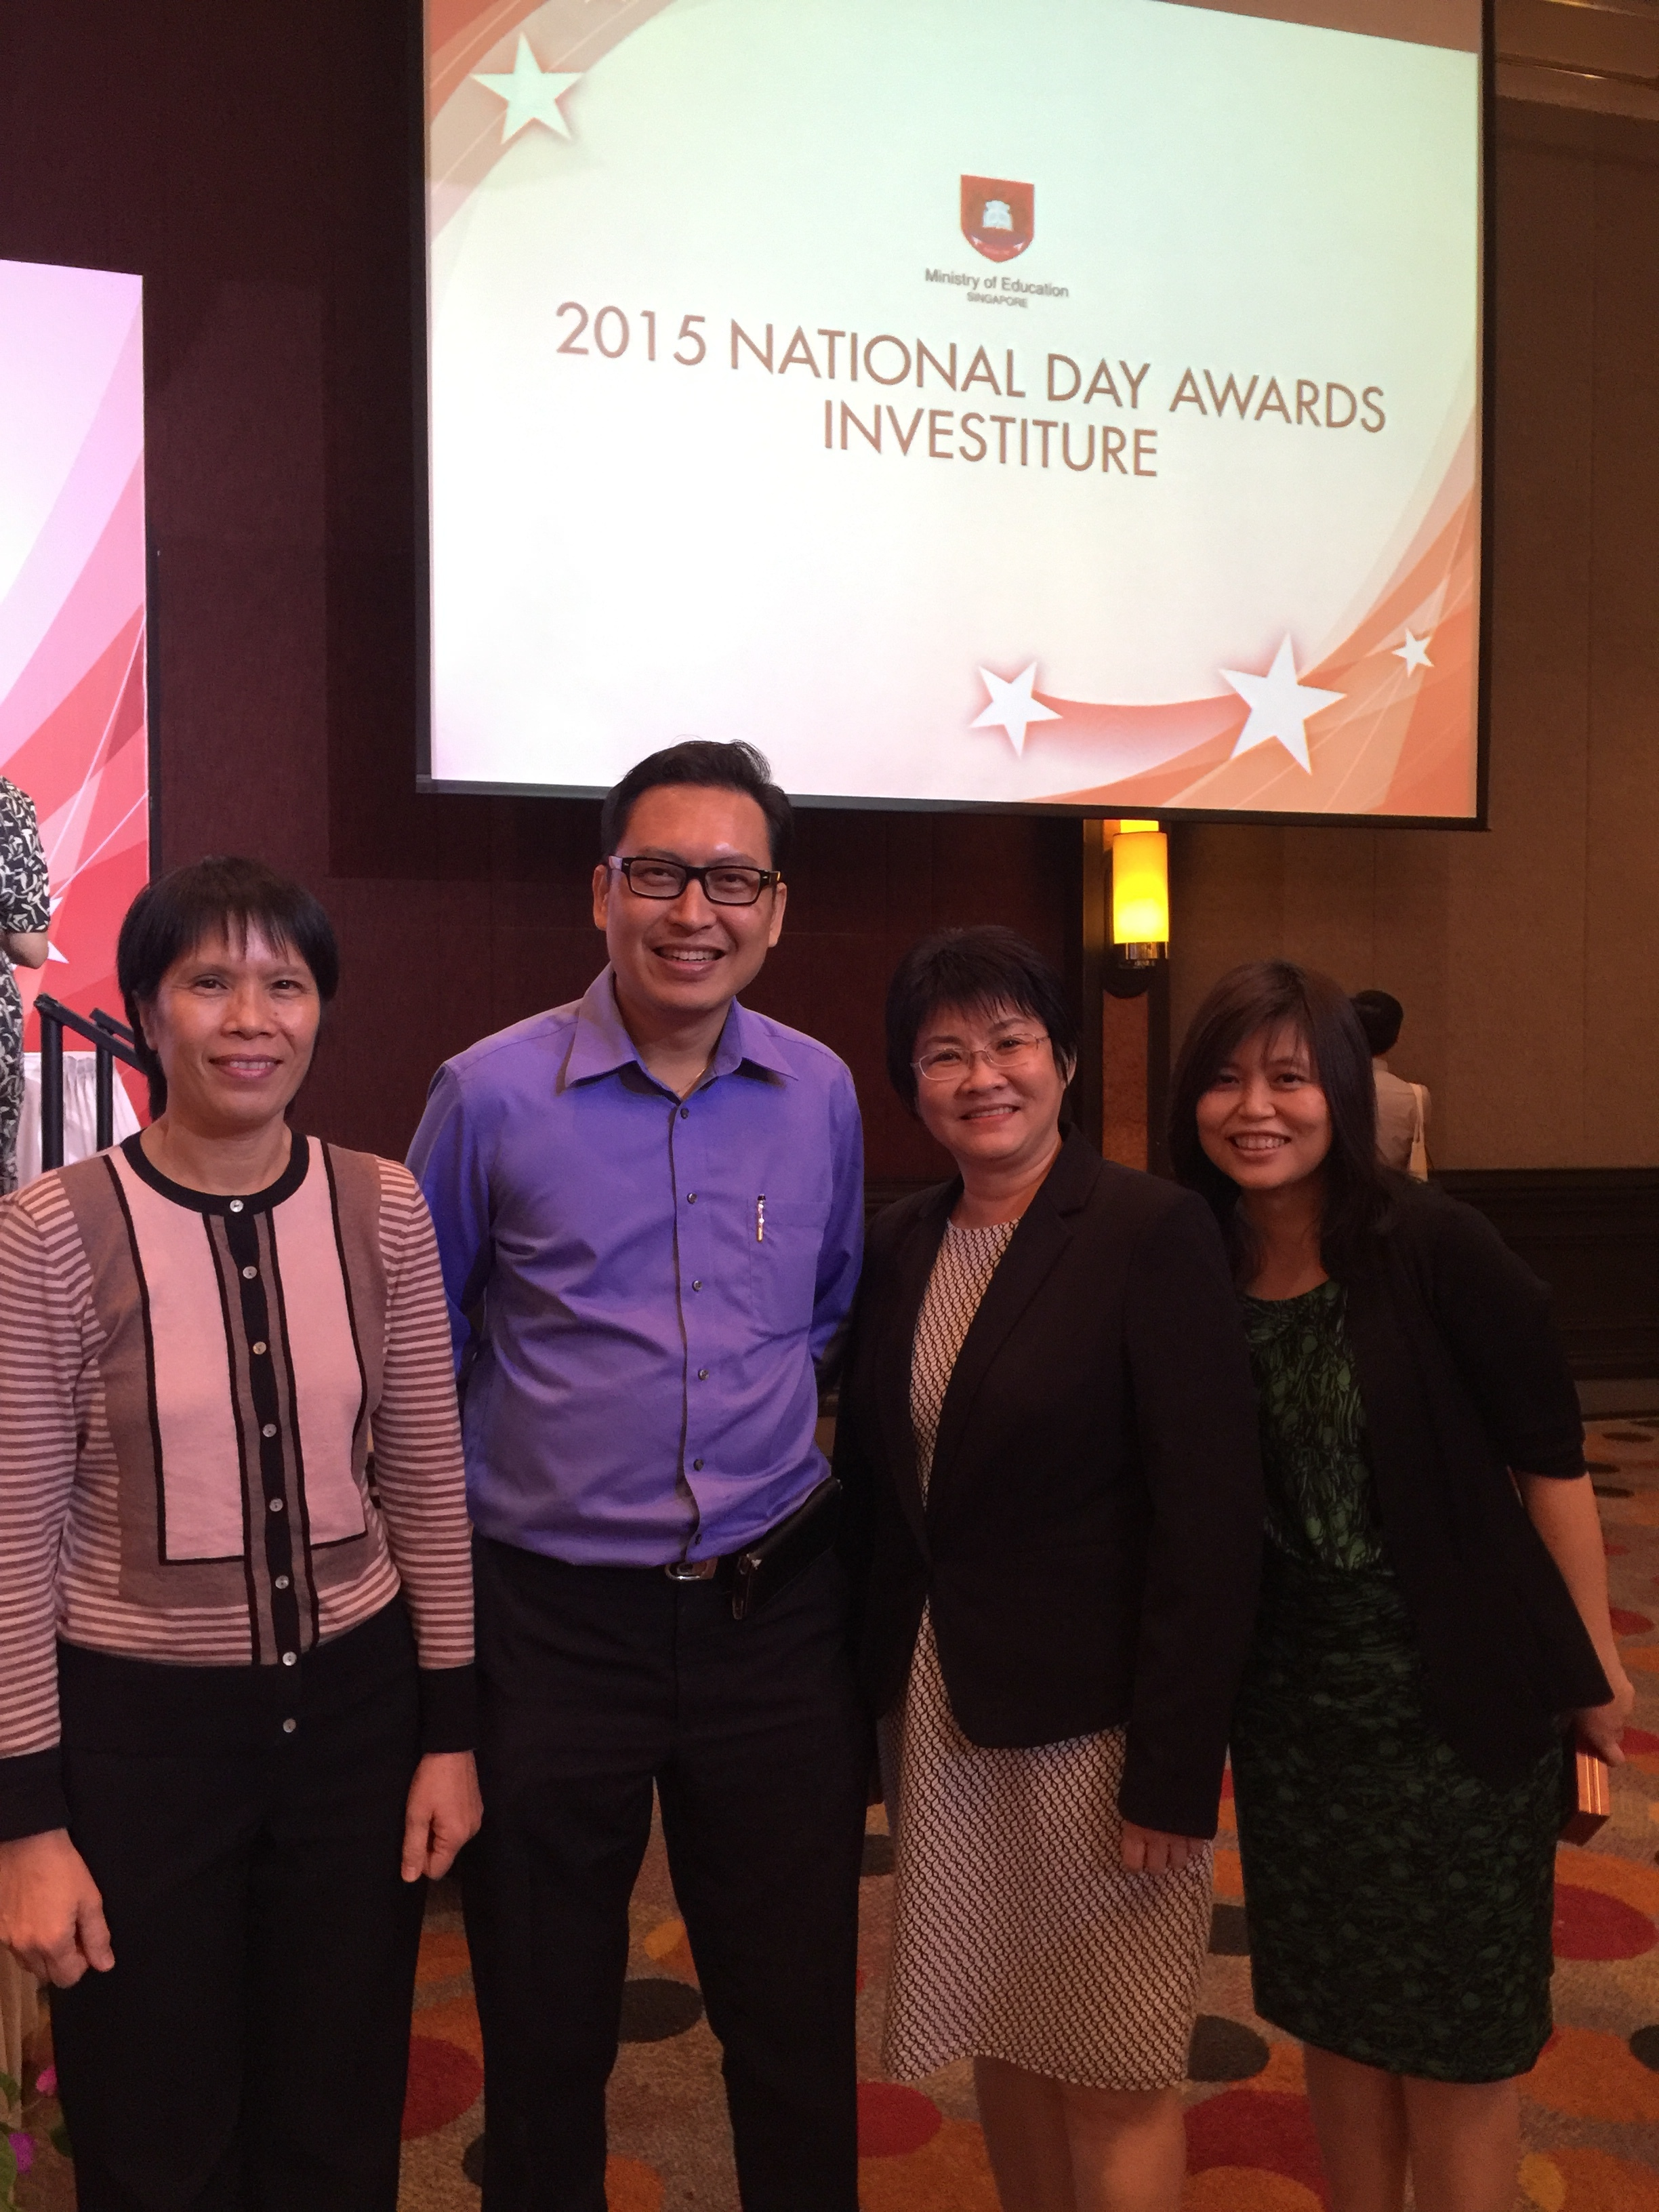 Dedicated service for at least 25 years_National Day Awards (MOE Long Service) 18 Nov 2015.JPG